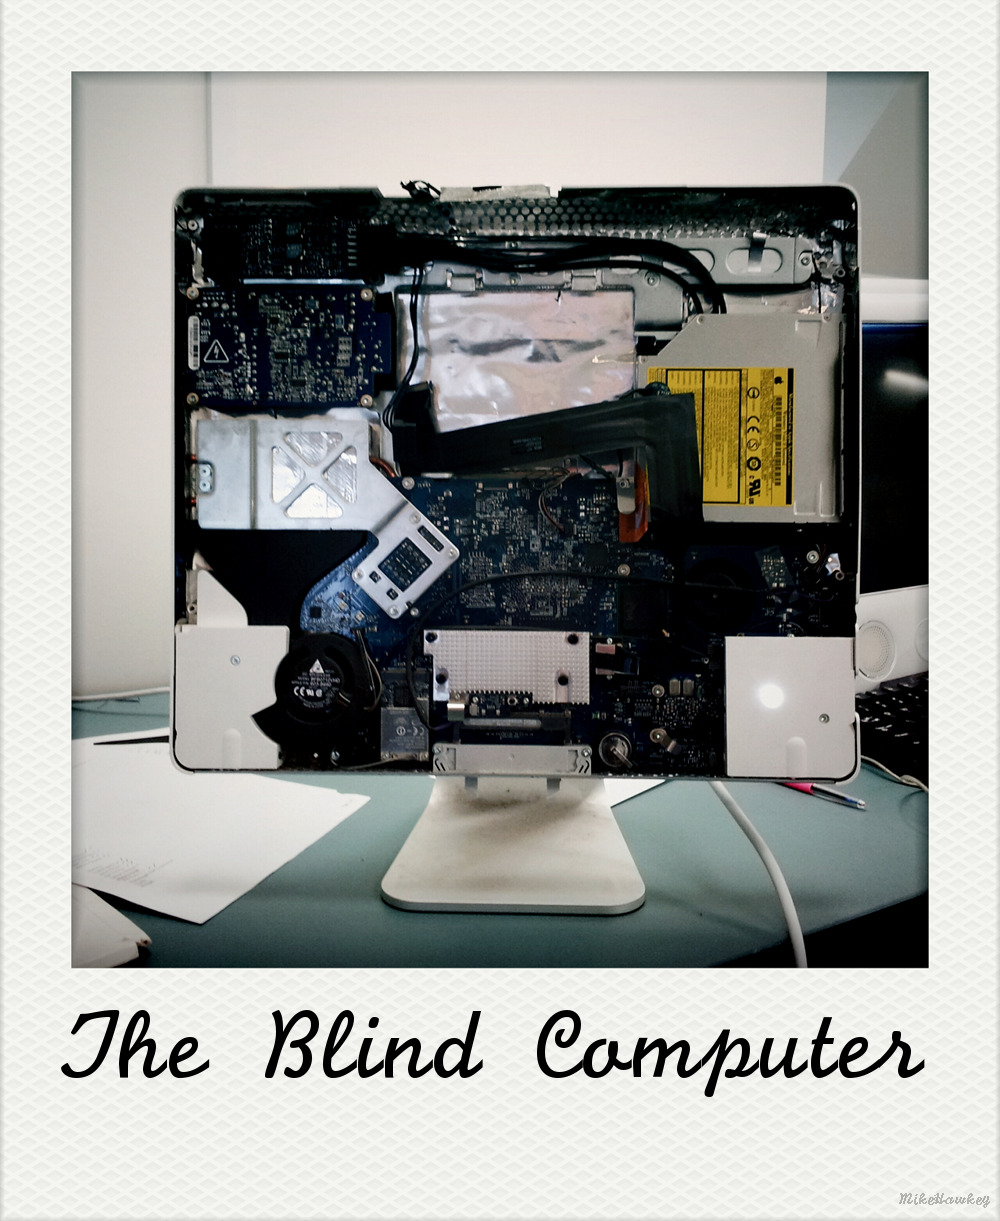 The Blind Computer